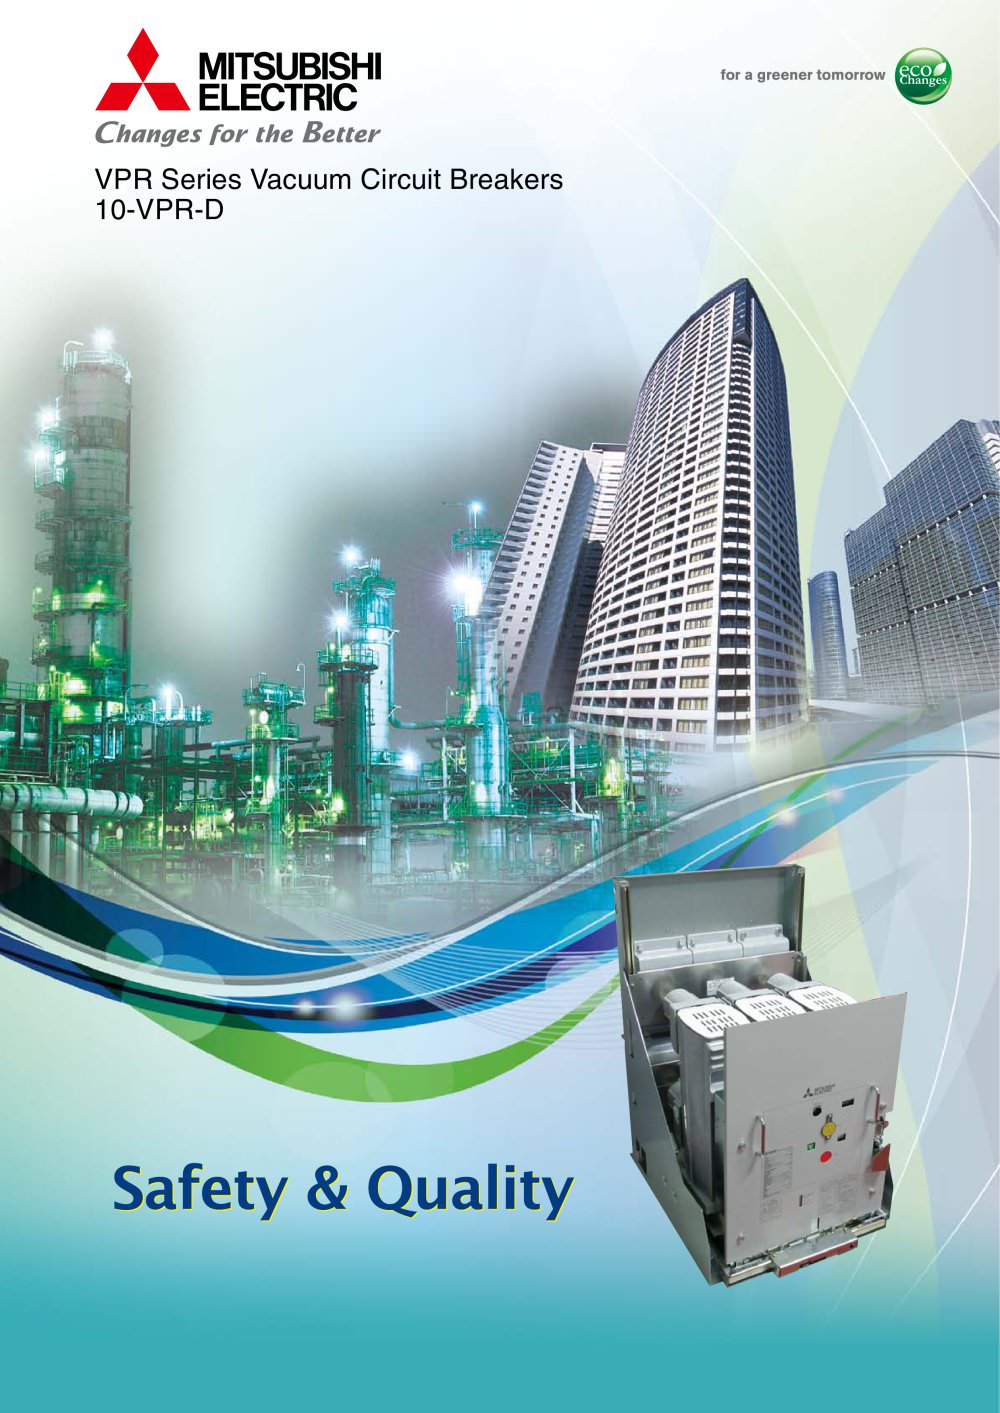 36 72 12 24kv Vacuum Circuit Breakers Type Vpr Mitsubishi Fuse Electronic Breaker Best Engineering Projects 23 Pages